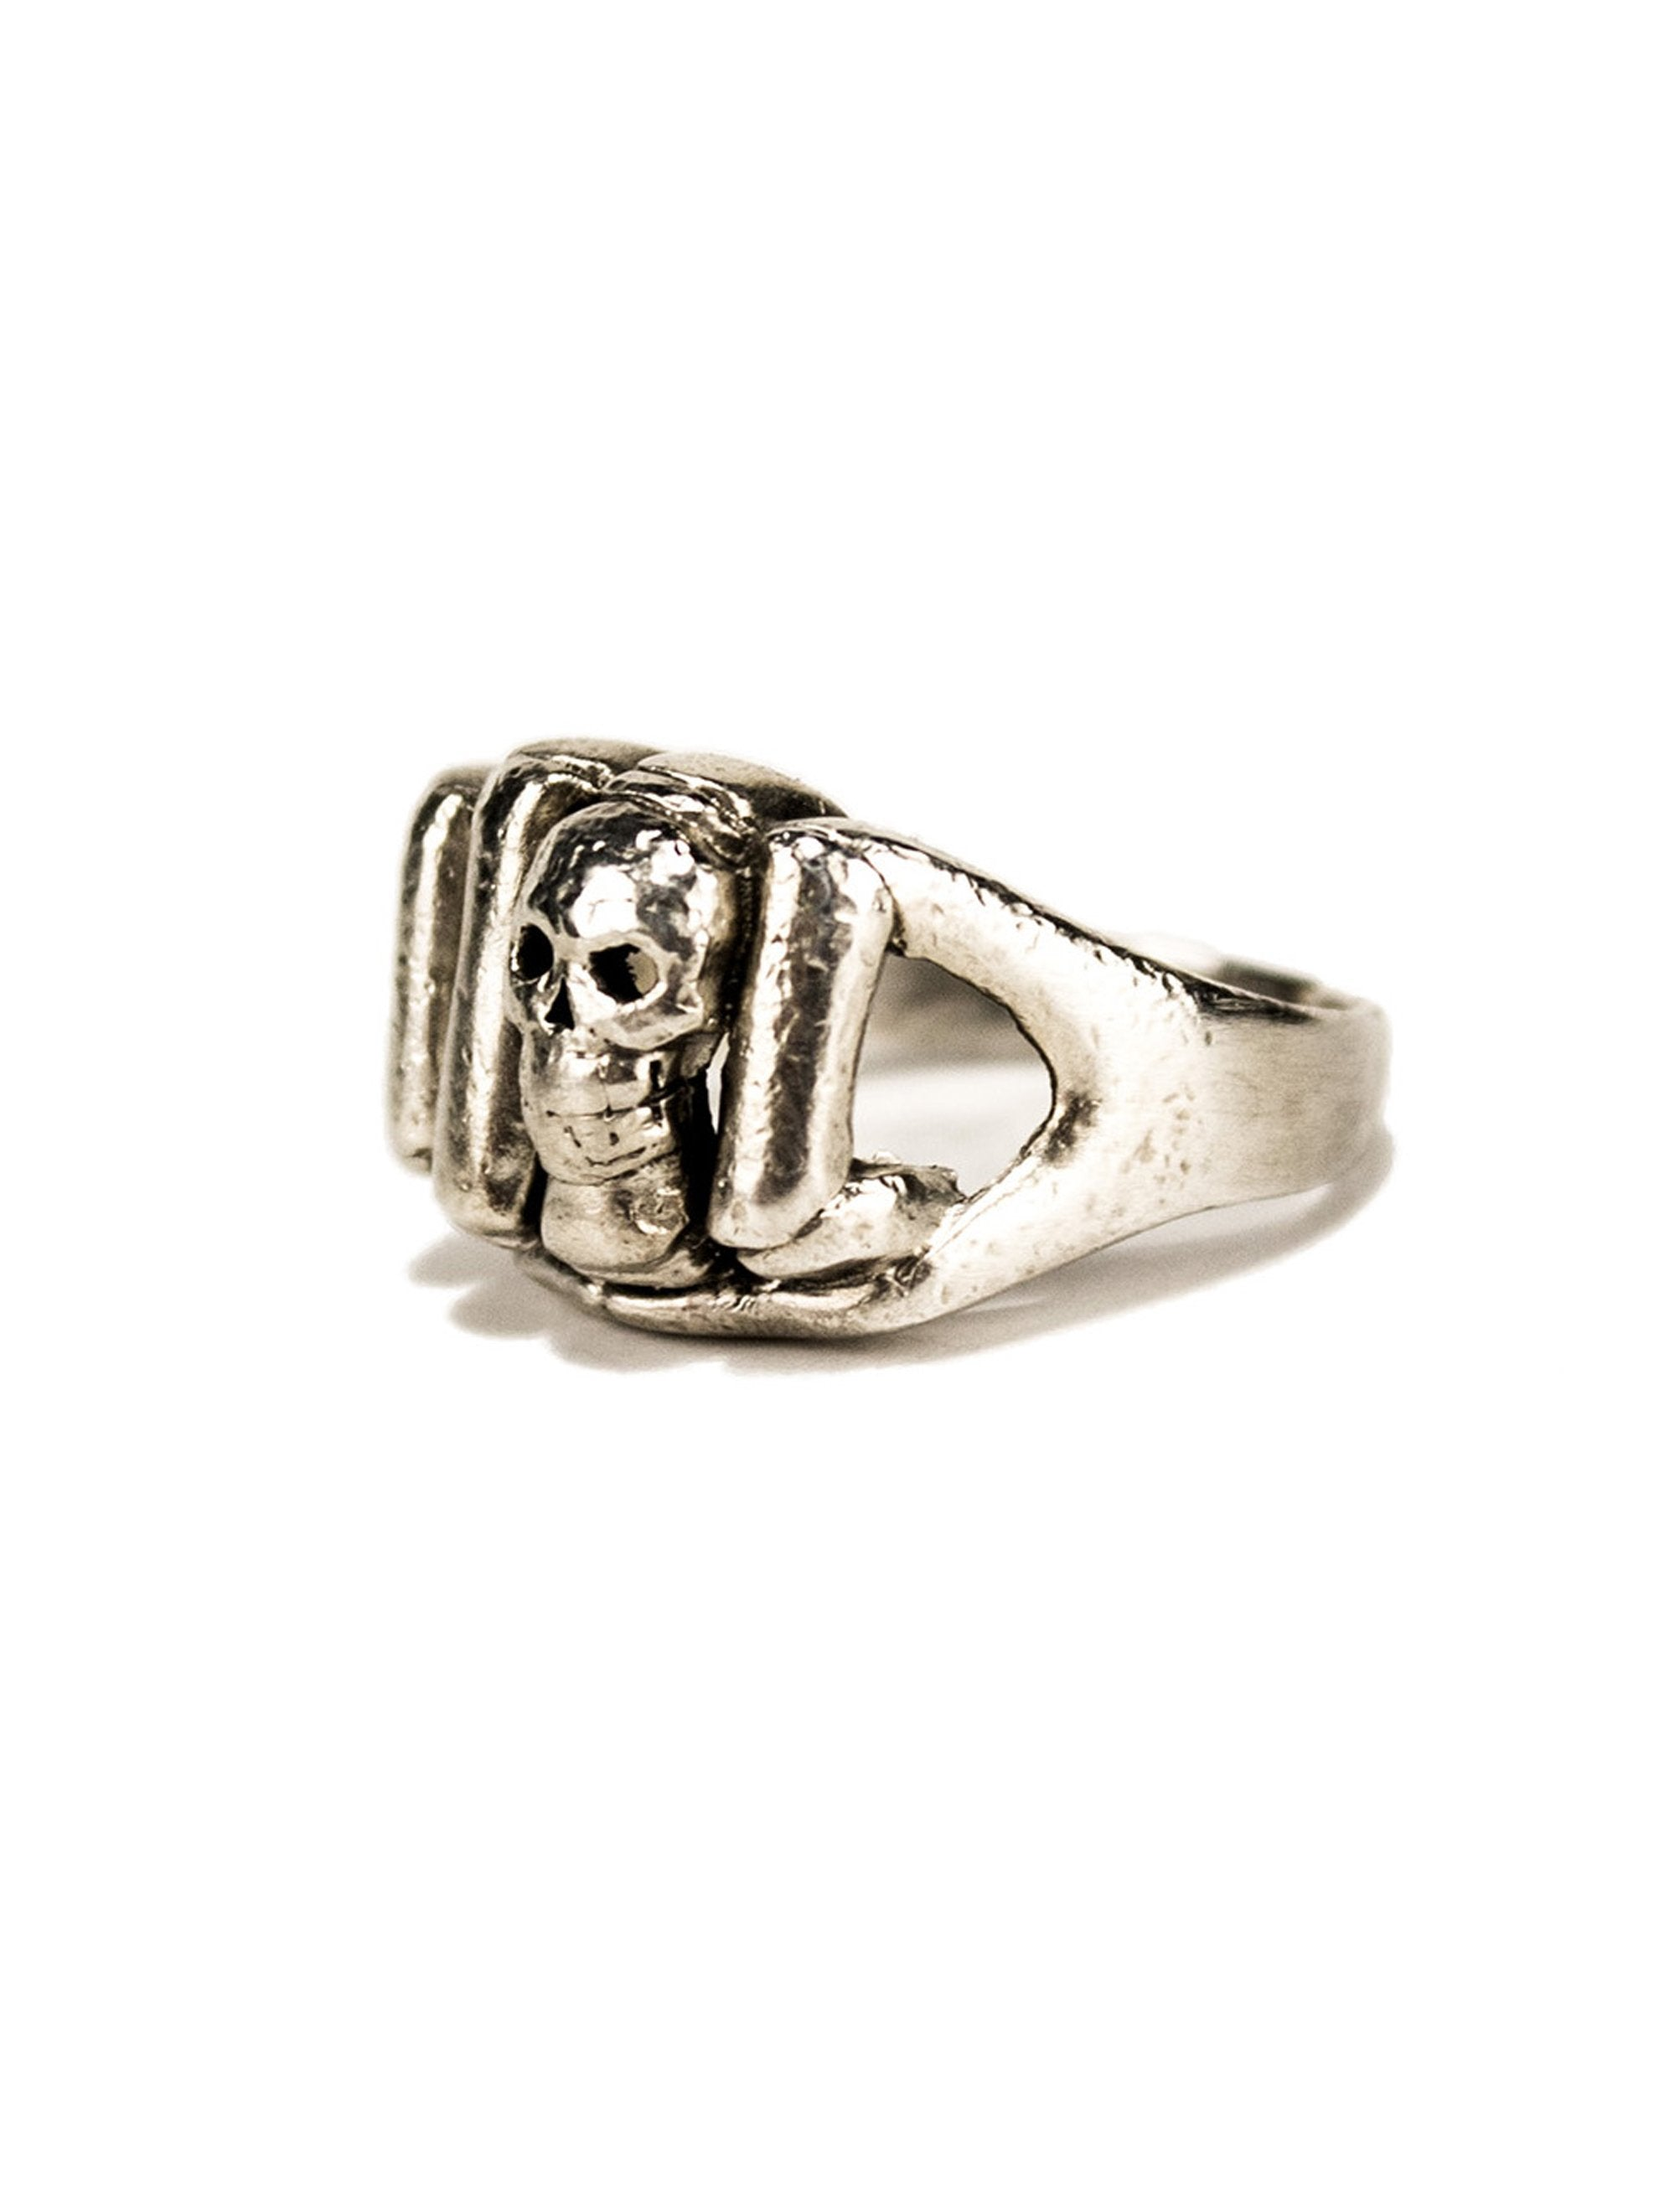 9.5 Vintage .925 Sterling Silver Skull and Fist Ring 2